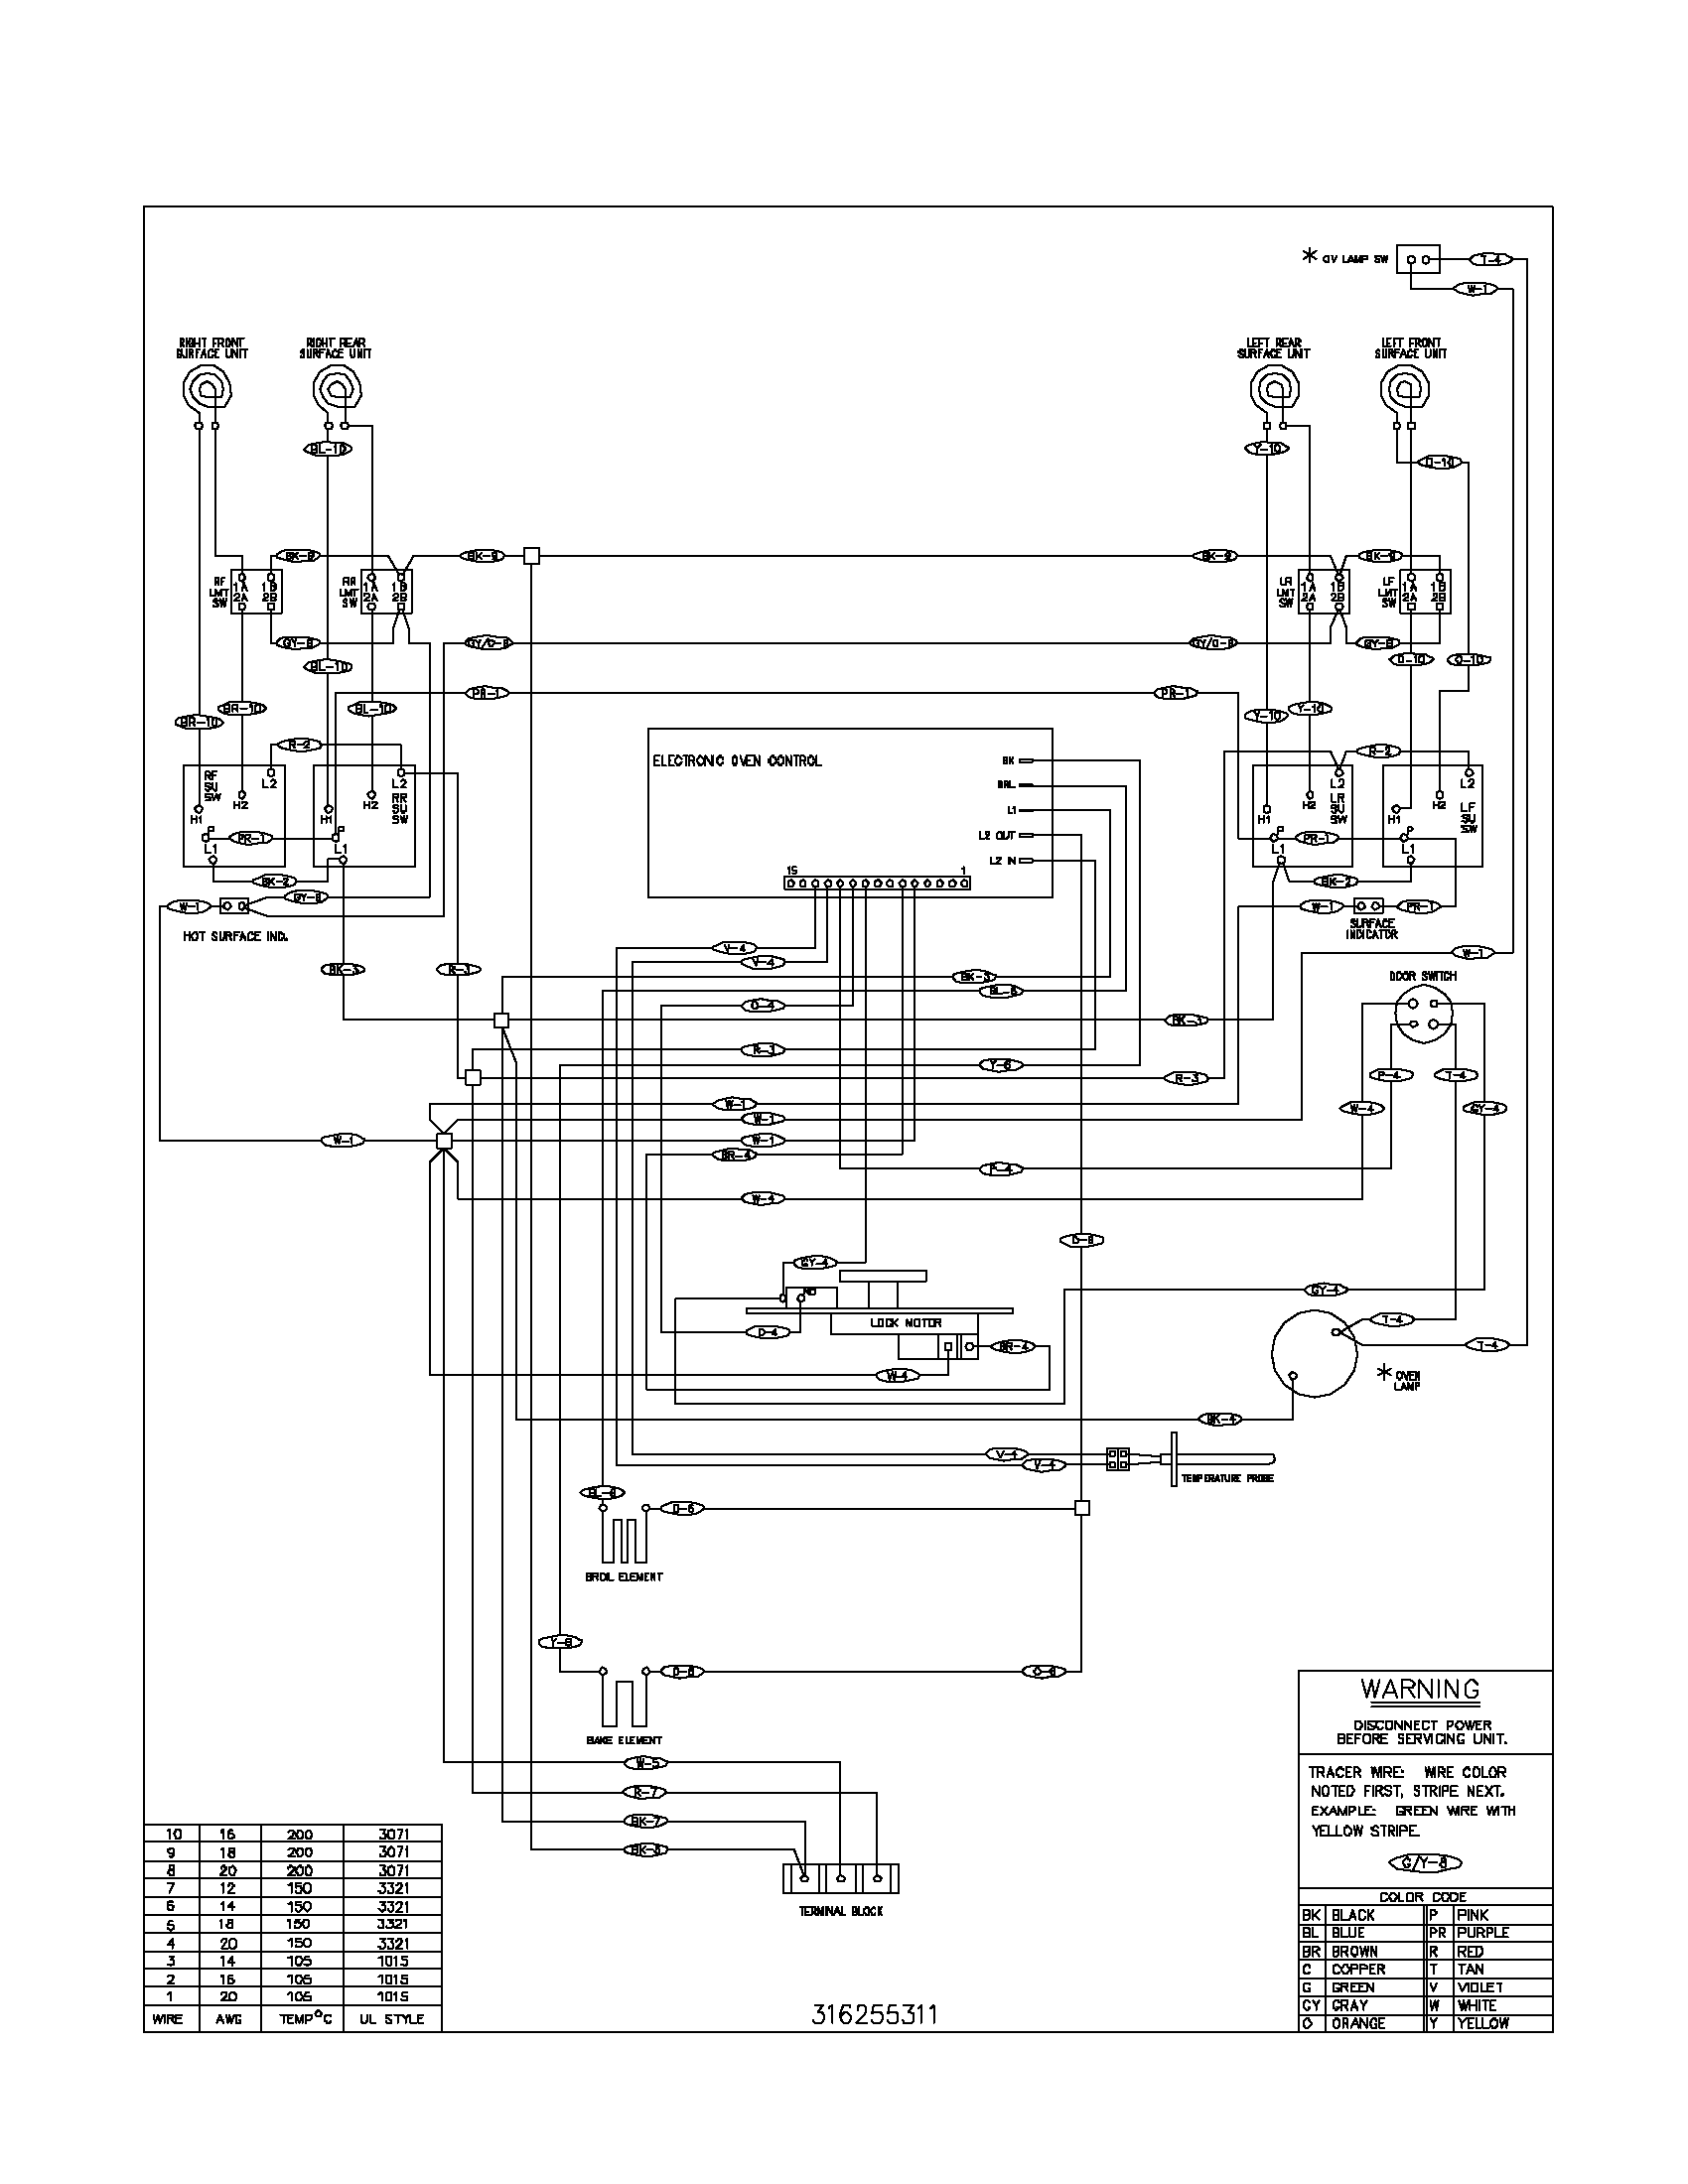 Commercial Defrost Timer Wiring 8141 20 Diagram